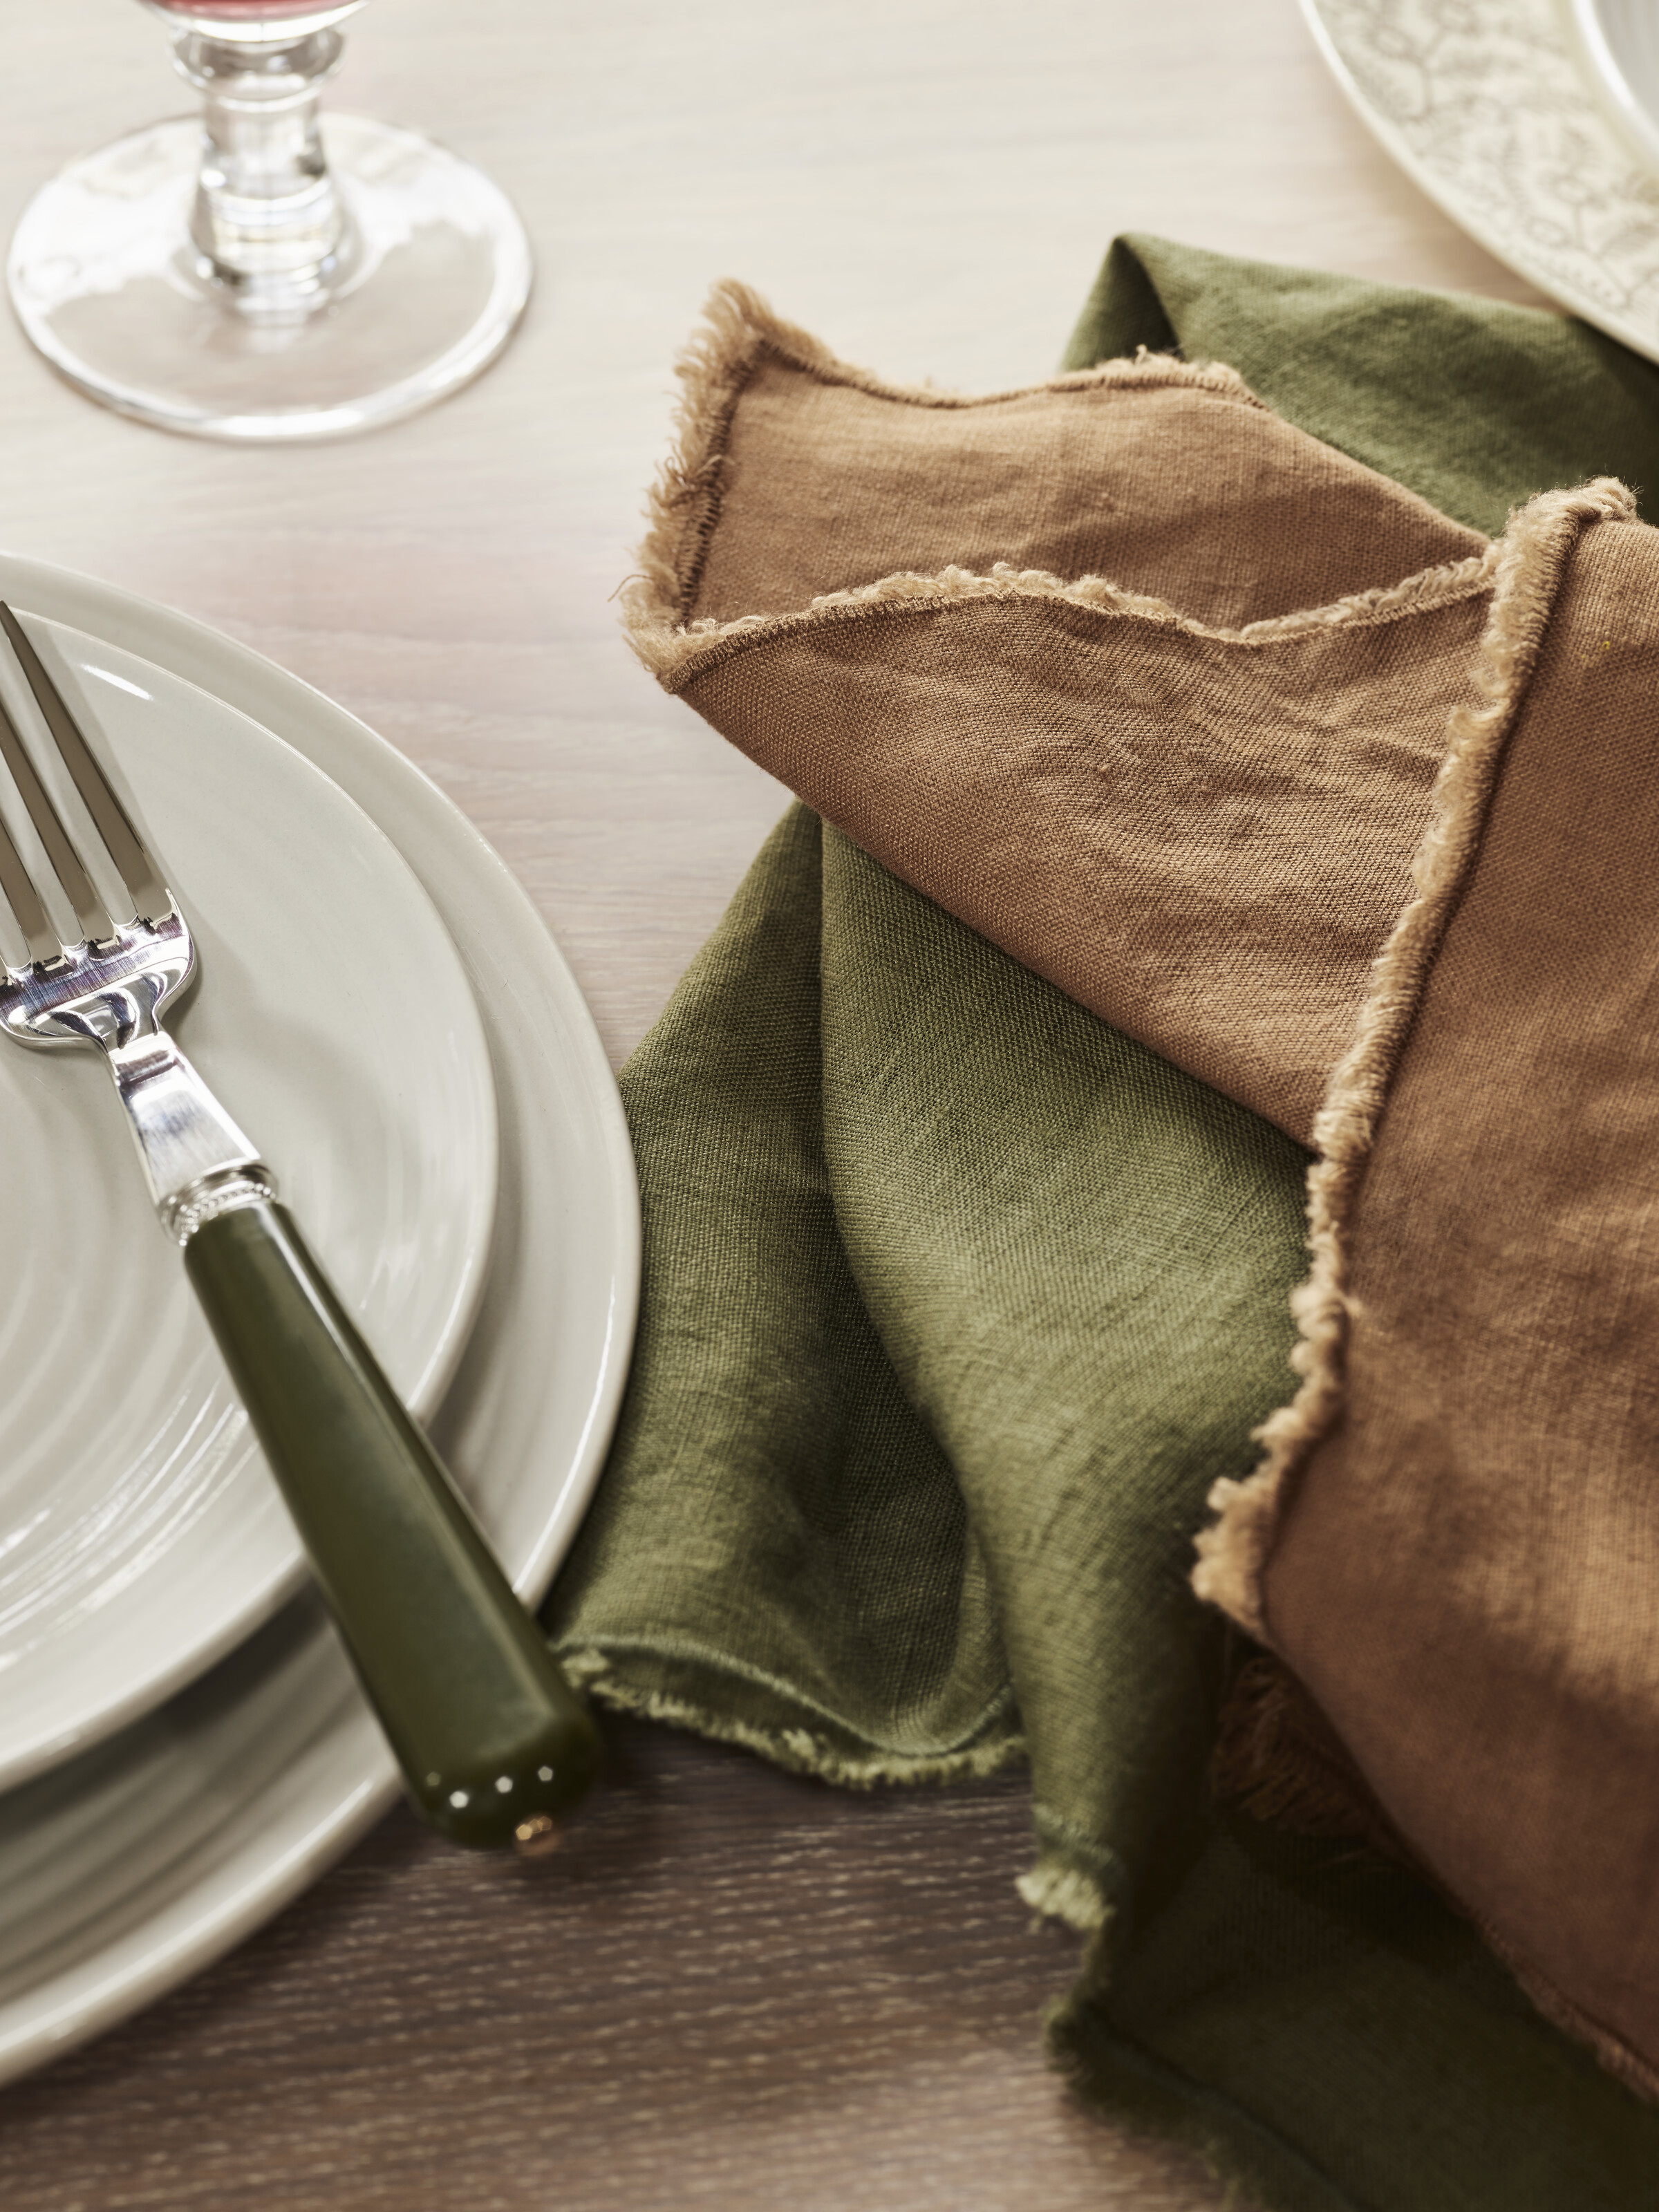 Olive tablescape with Antonia napkins